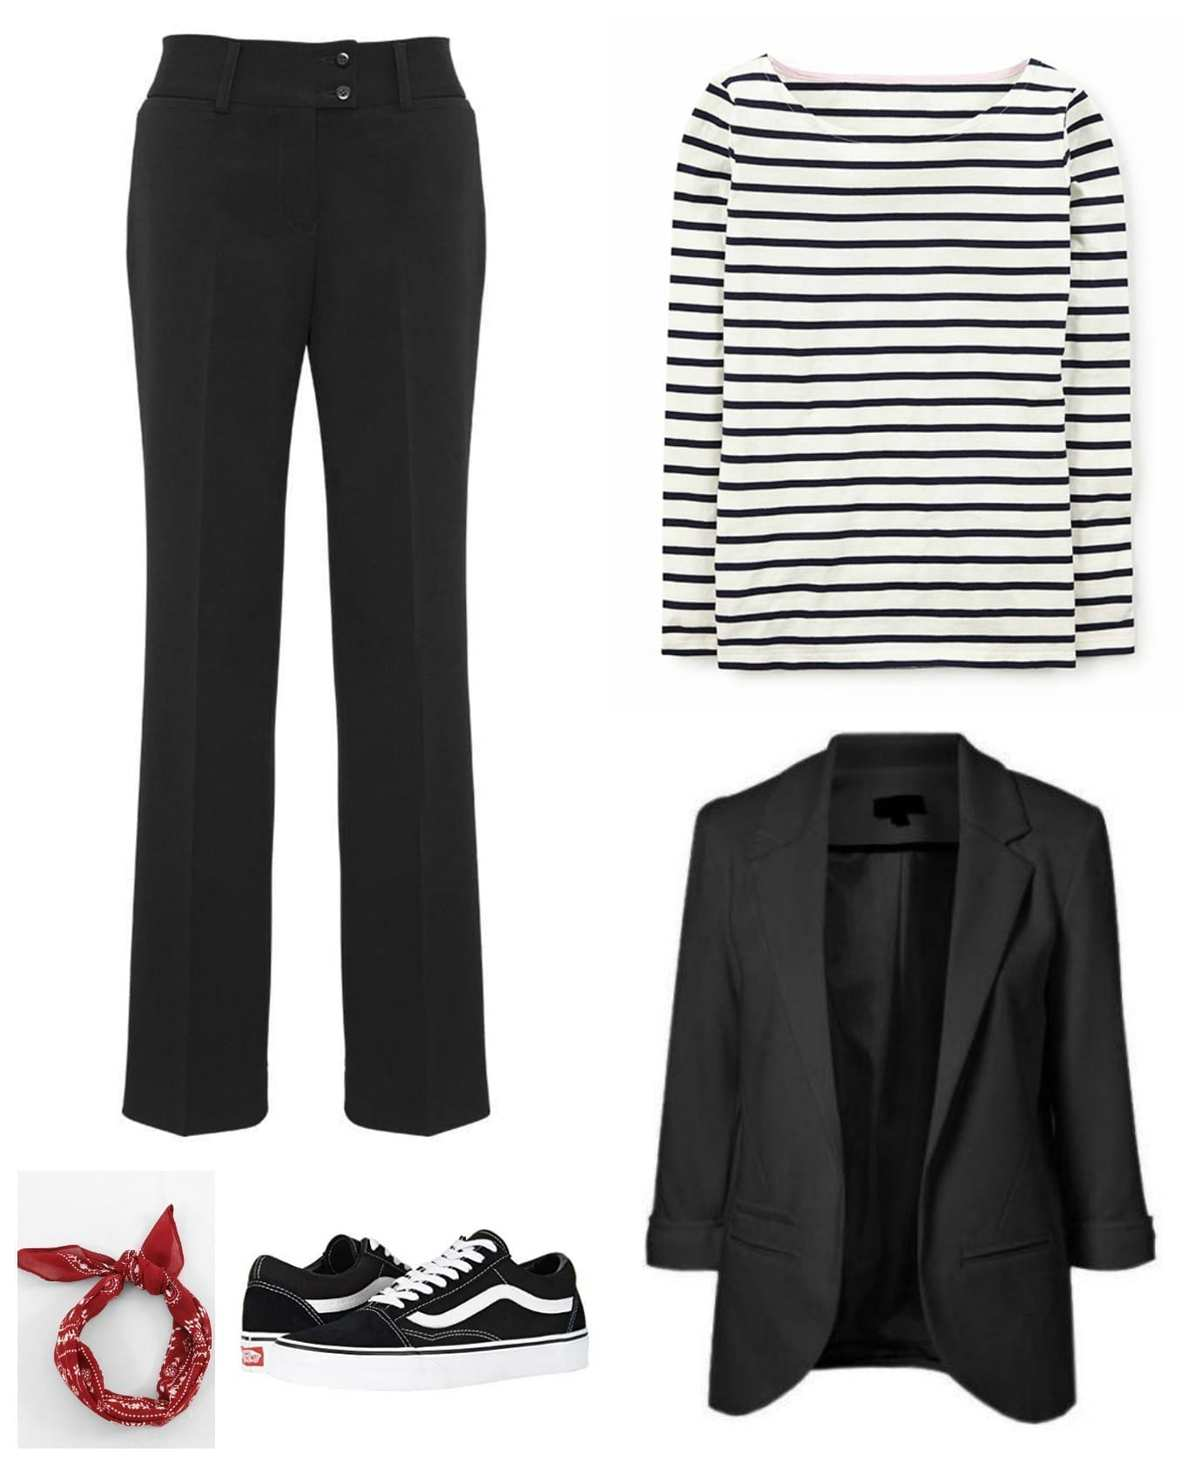 sporty casual capsule wardrobe